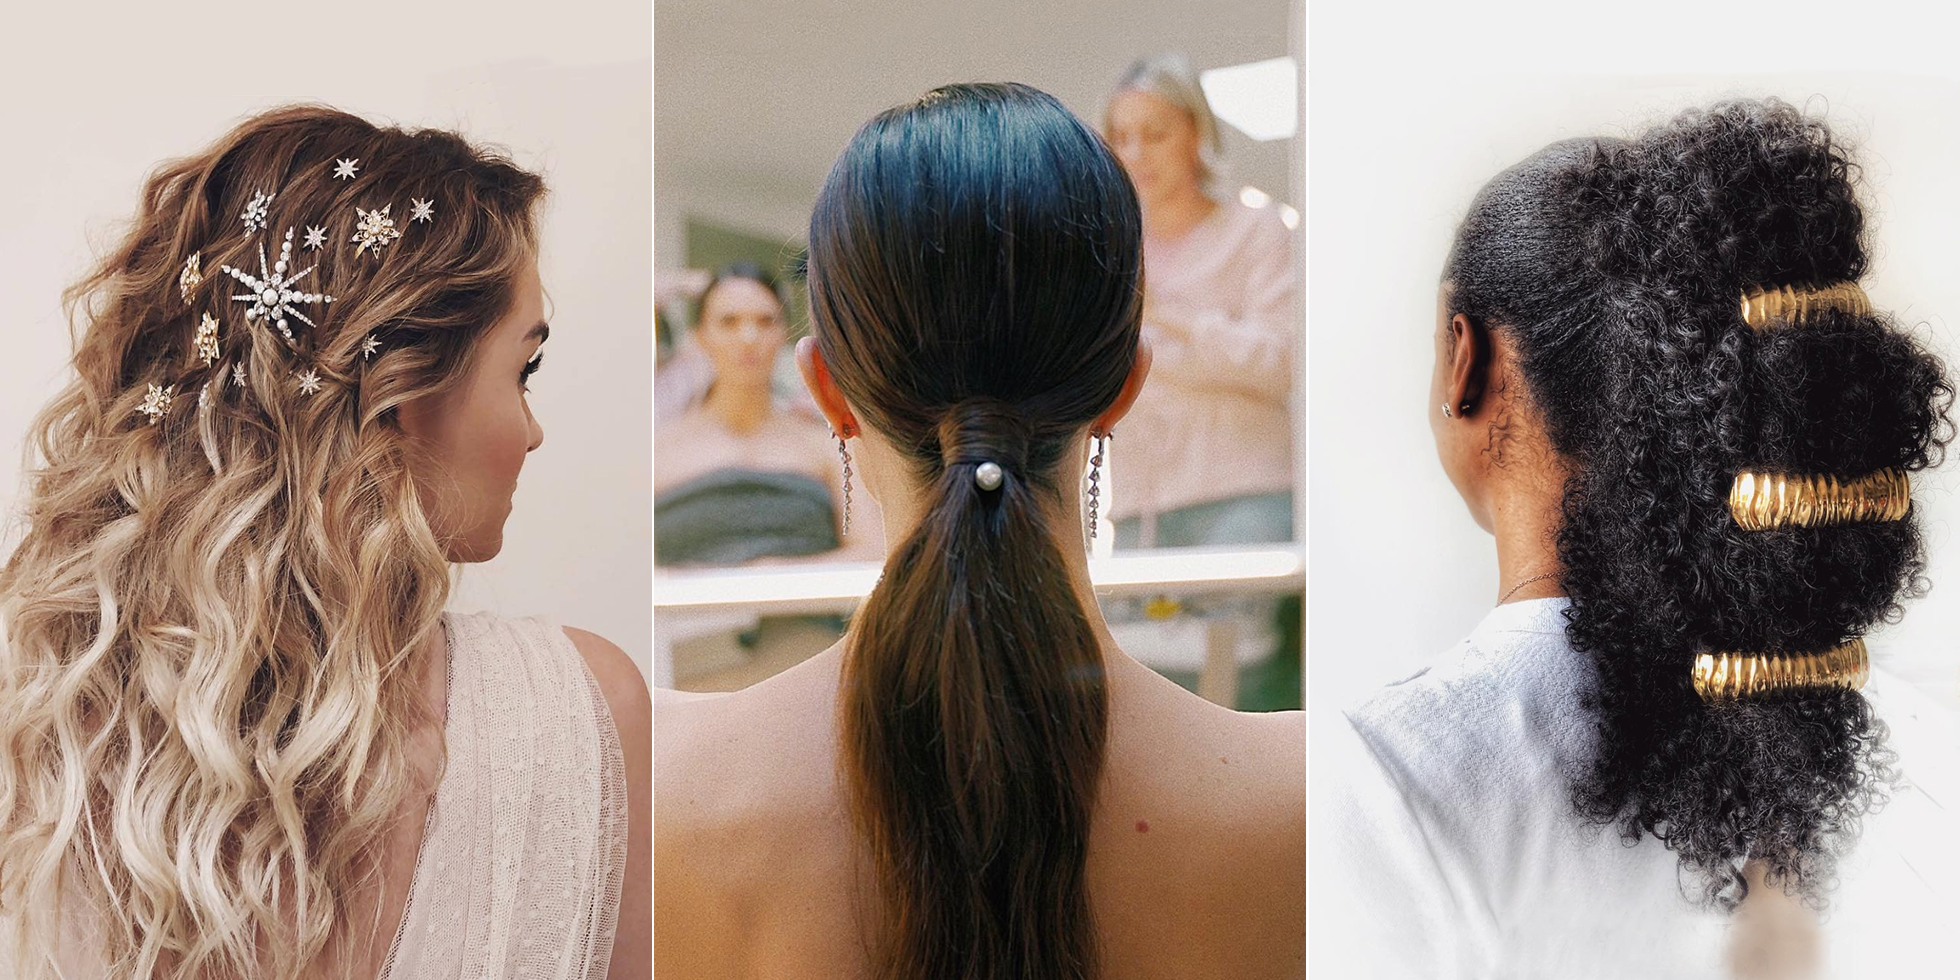 32 Best Bridesmaid Hairstyles to Copy , Pretty and Easy